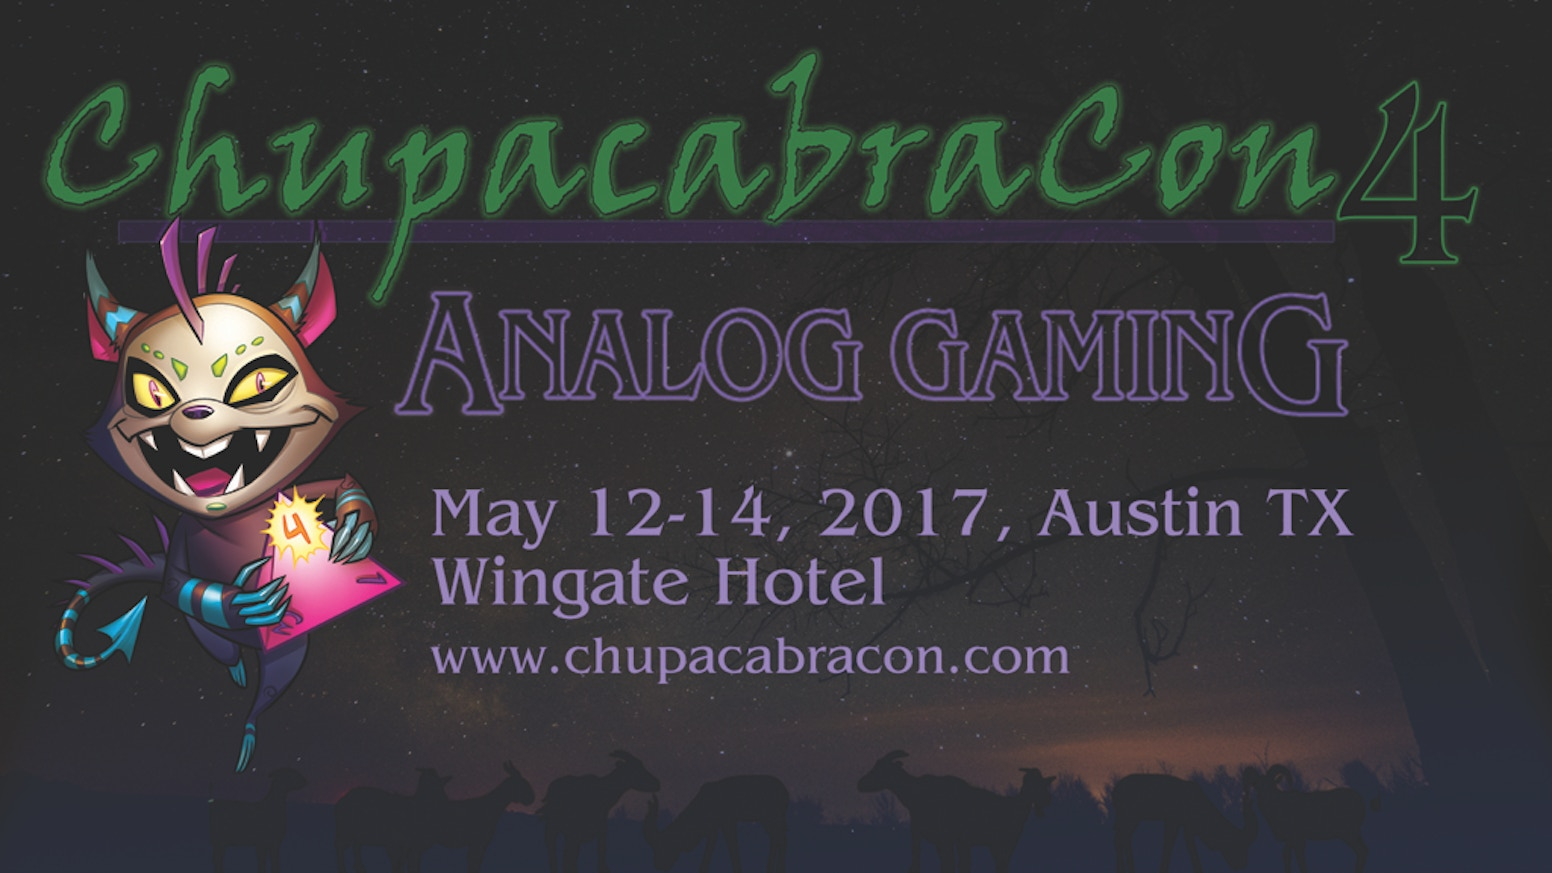 ChupacabraCon is Austin's premier Analog Gaming con! Meet, play with and learn from top RPG authors, game creators and more!